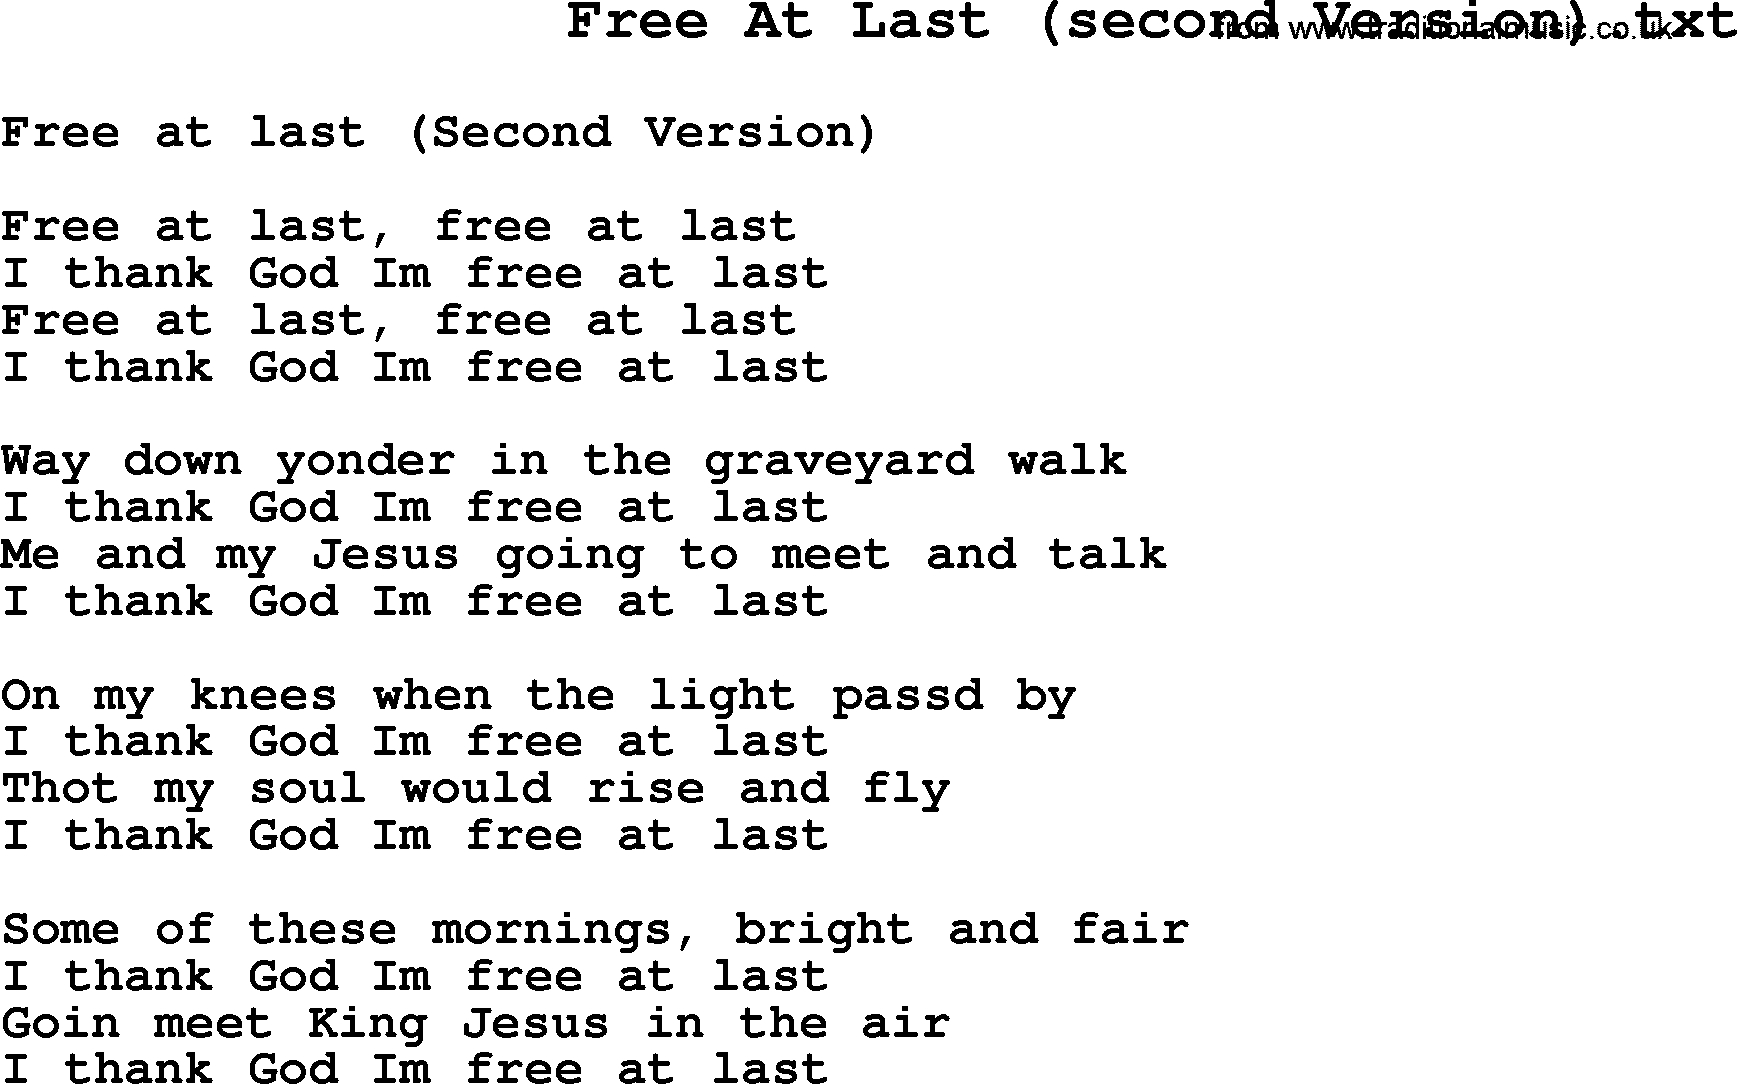 Negro Spiritual/slave Song Lyrics For Free At Last(2) - Free Printable Song Lyrics